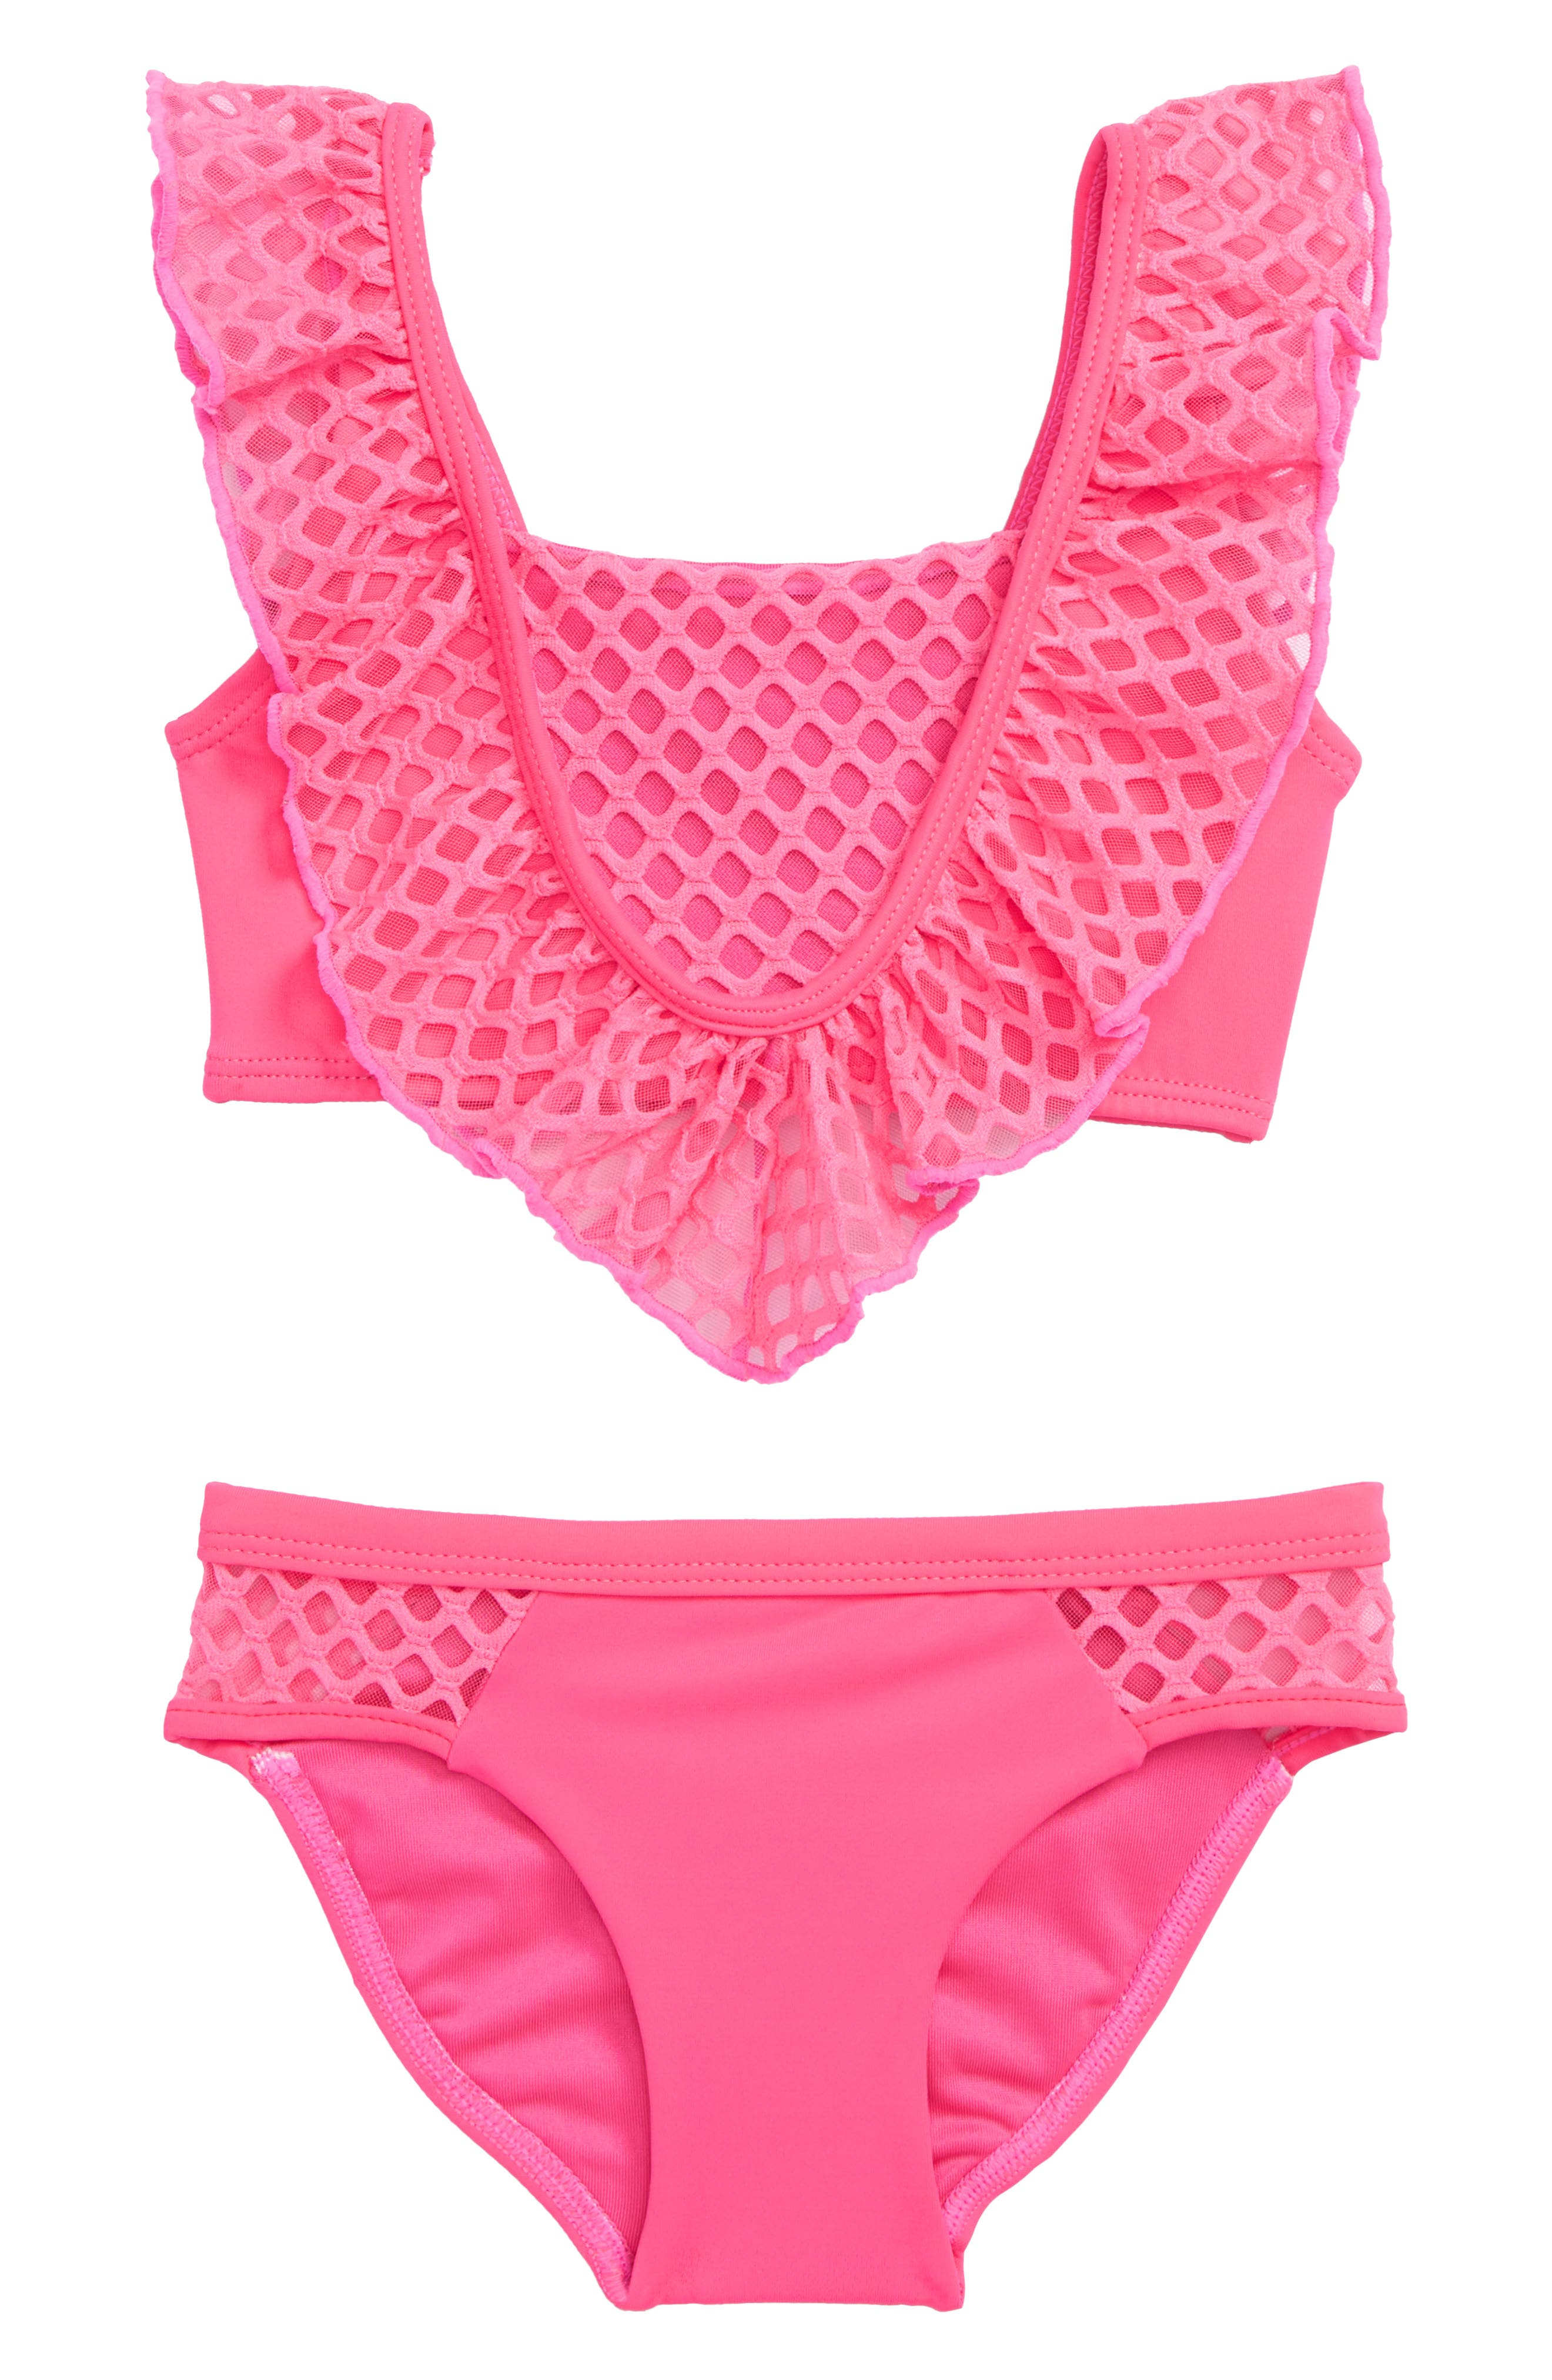 Blake Ruffle Two-Piece Swimsuit,                             Main thumbnail 1, color,                             678